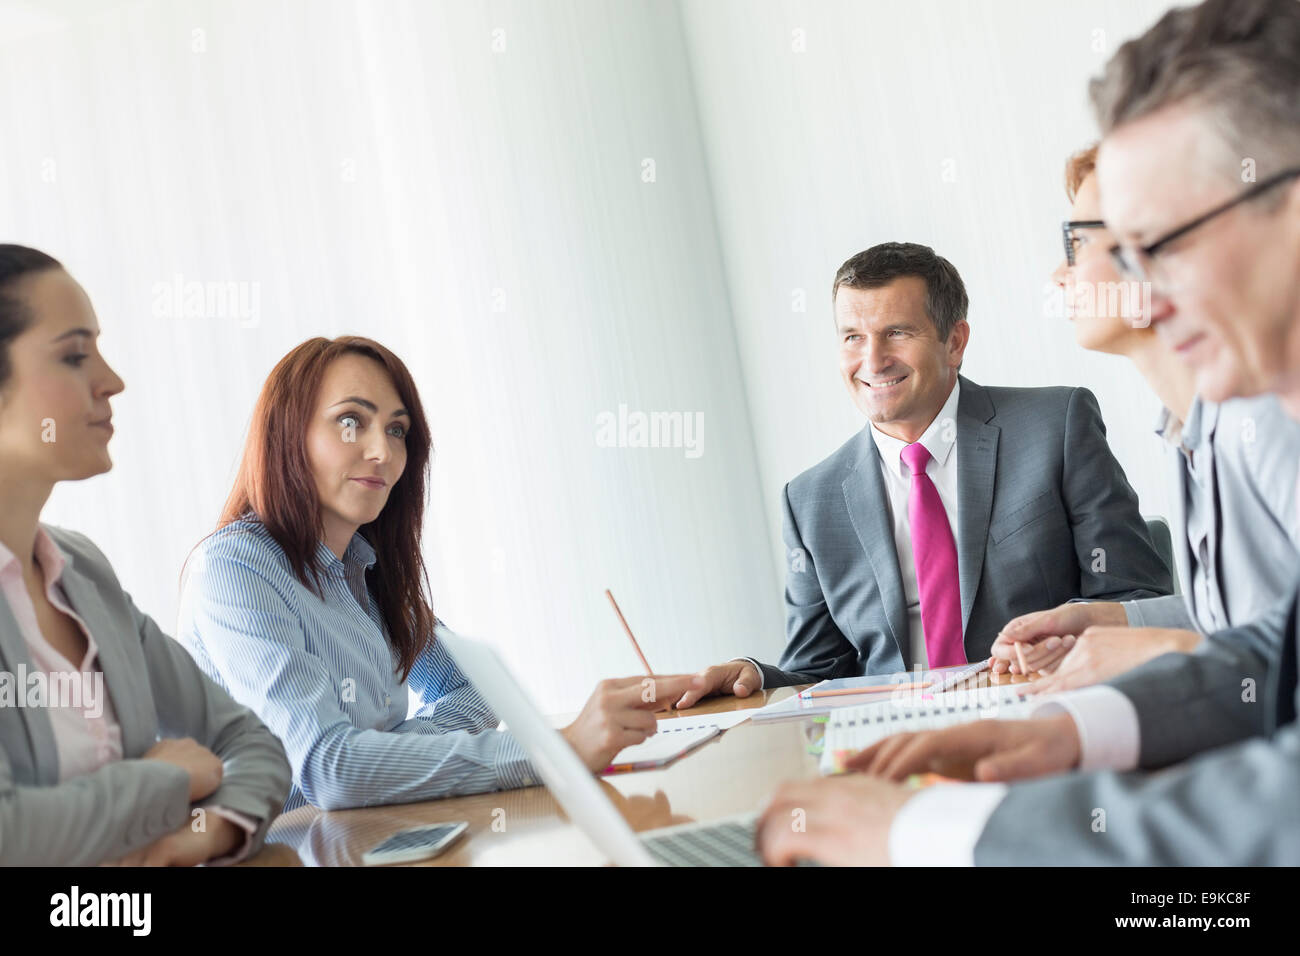 Business people in conference room Stock Photo